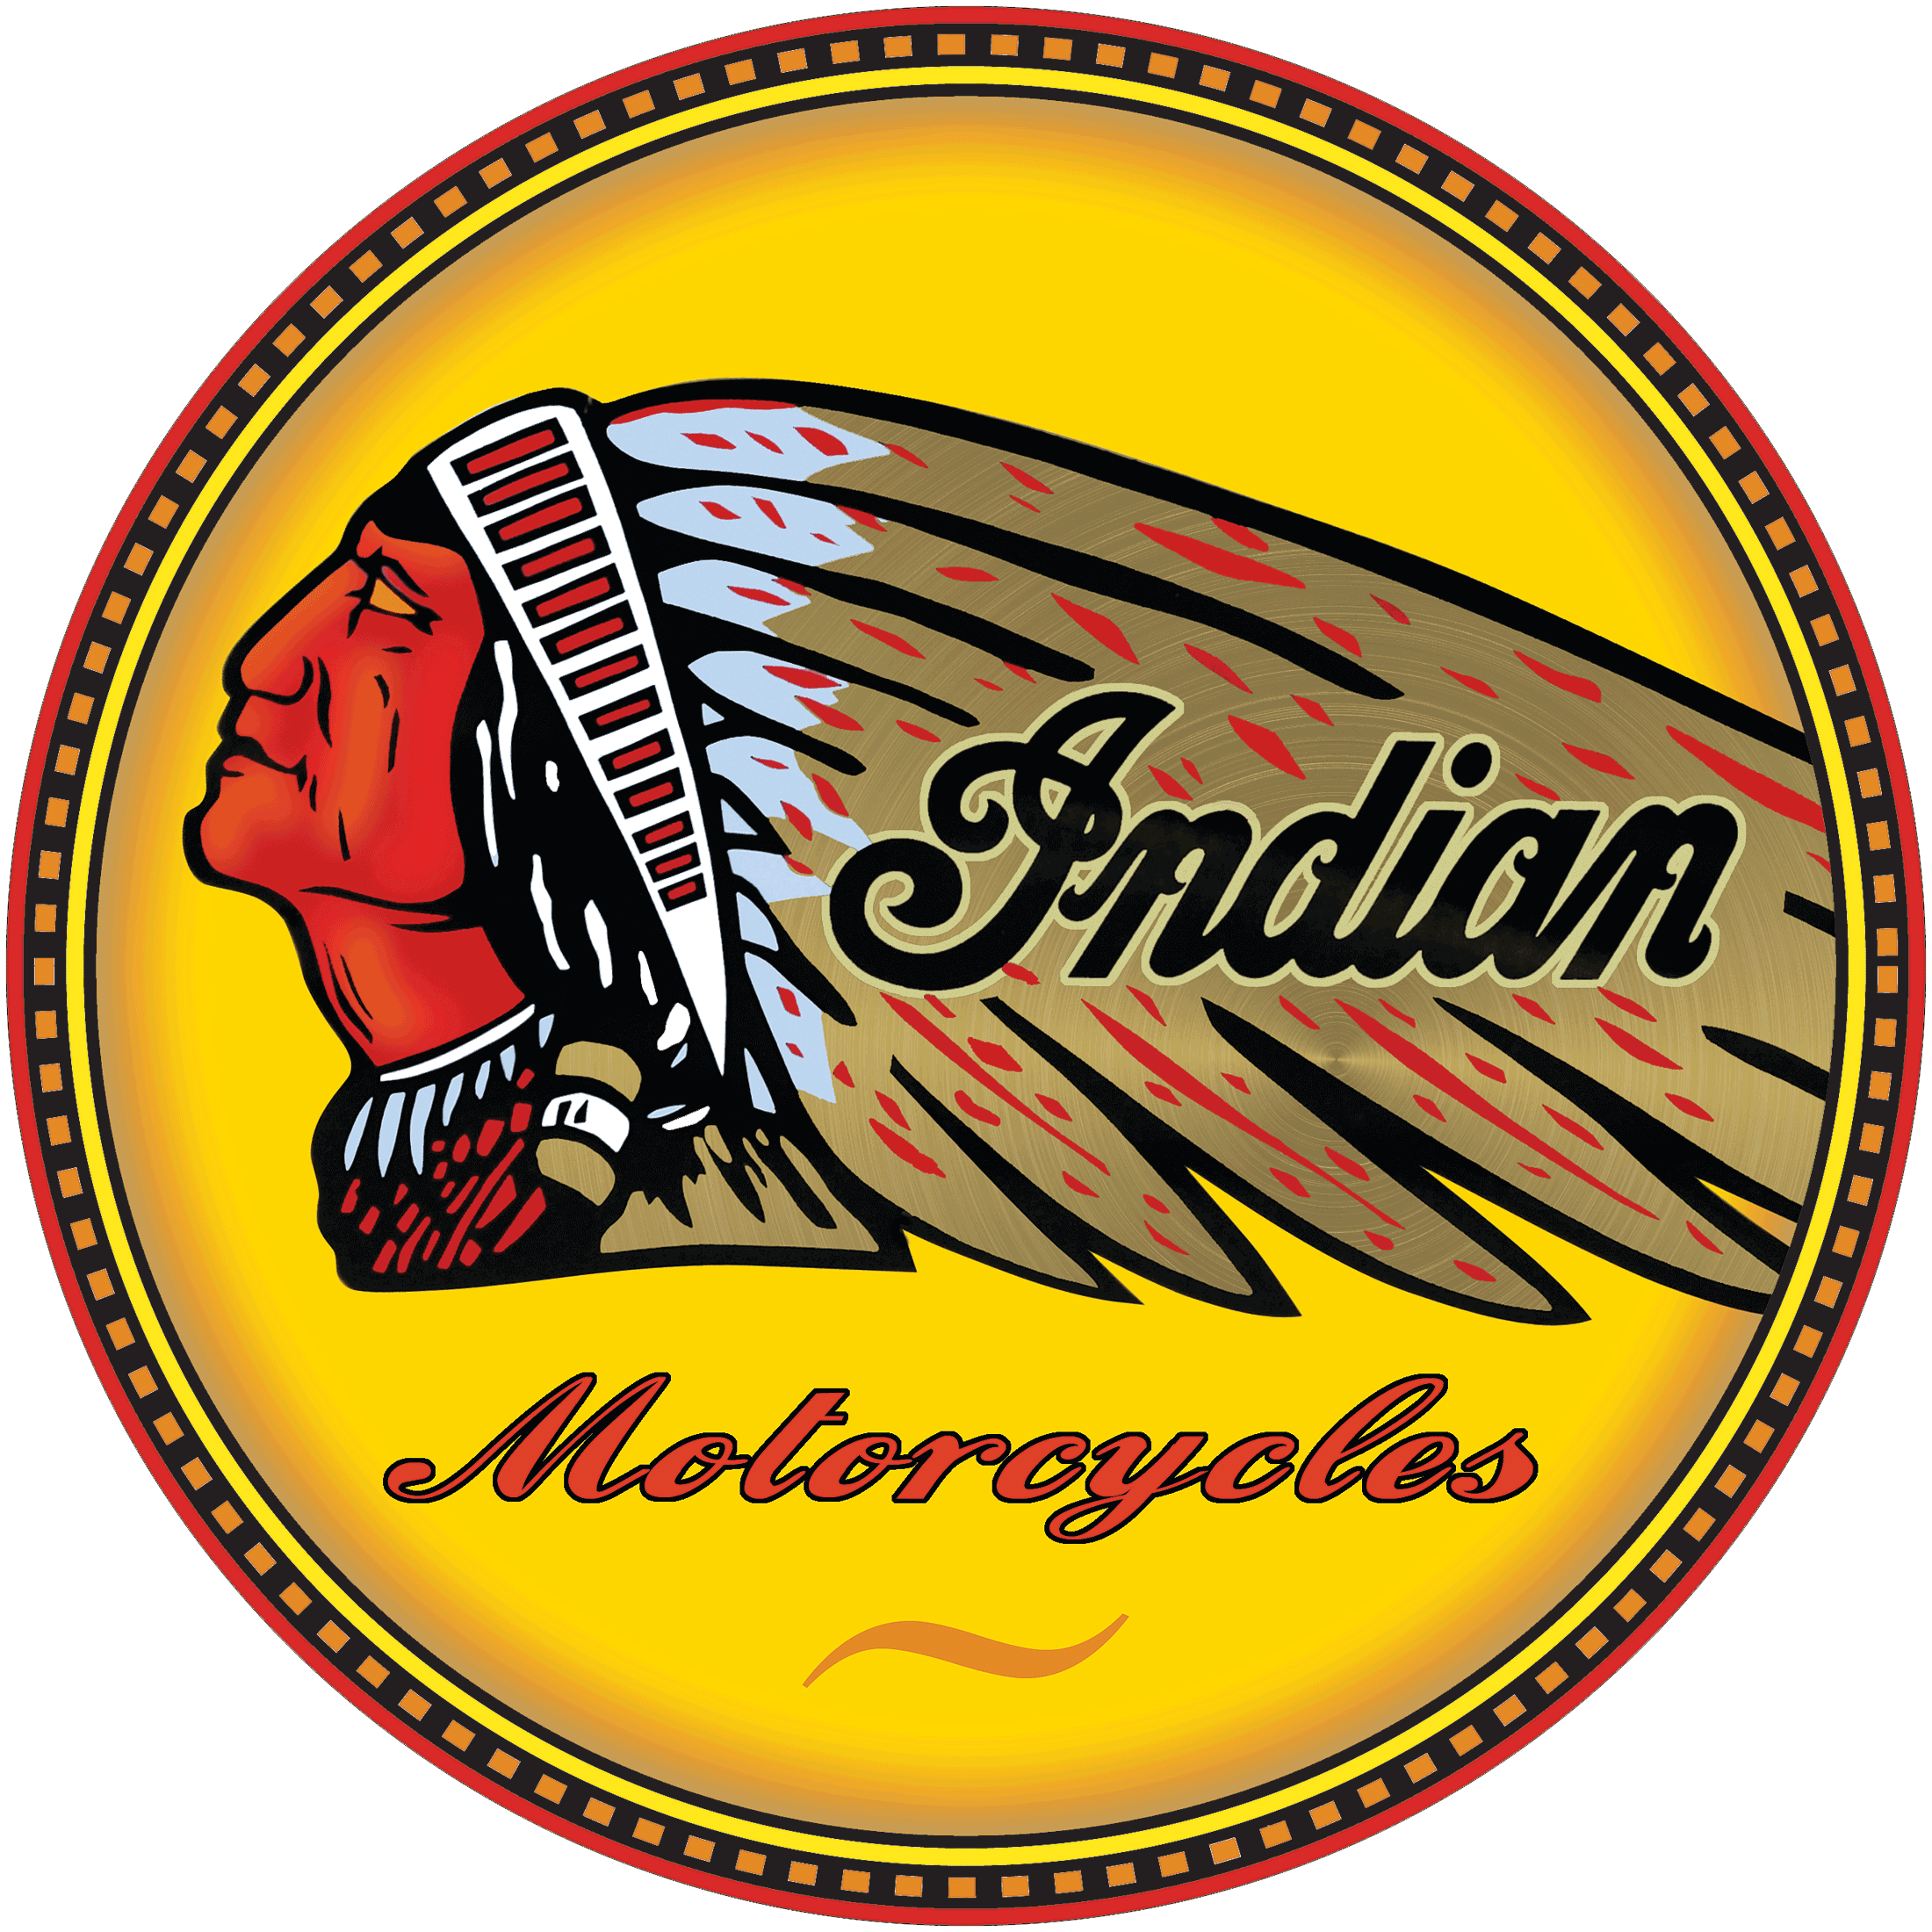 Indian motorcycles re done. Motorcycle clipart norton motorcycle